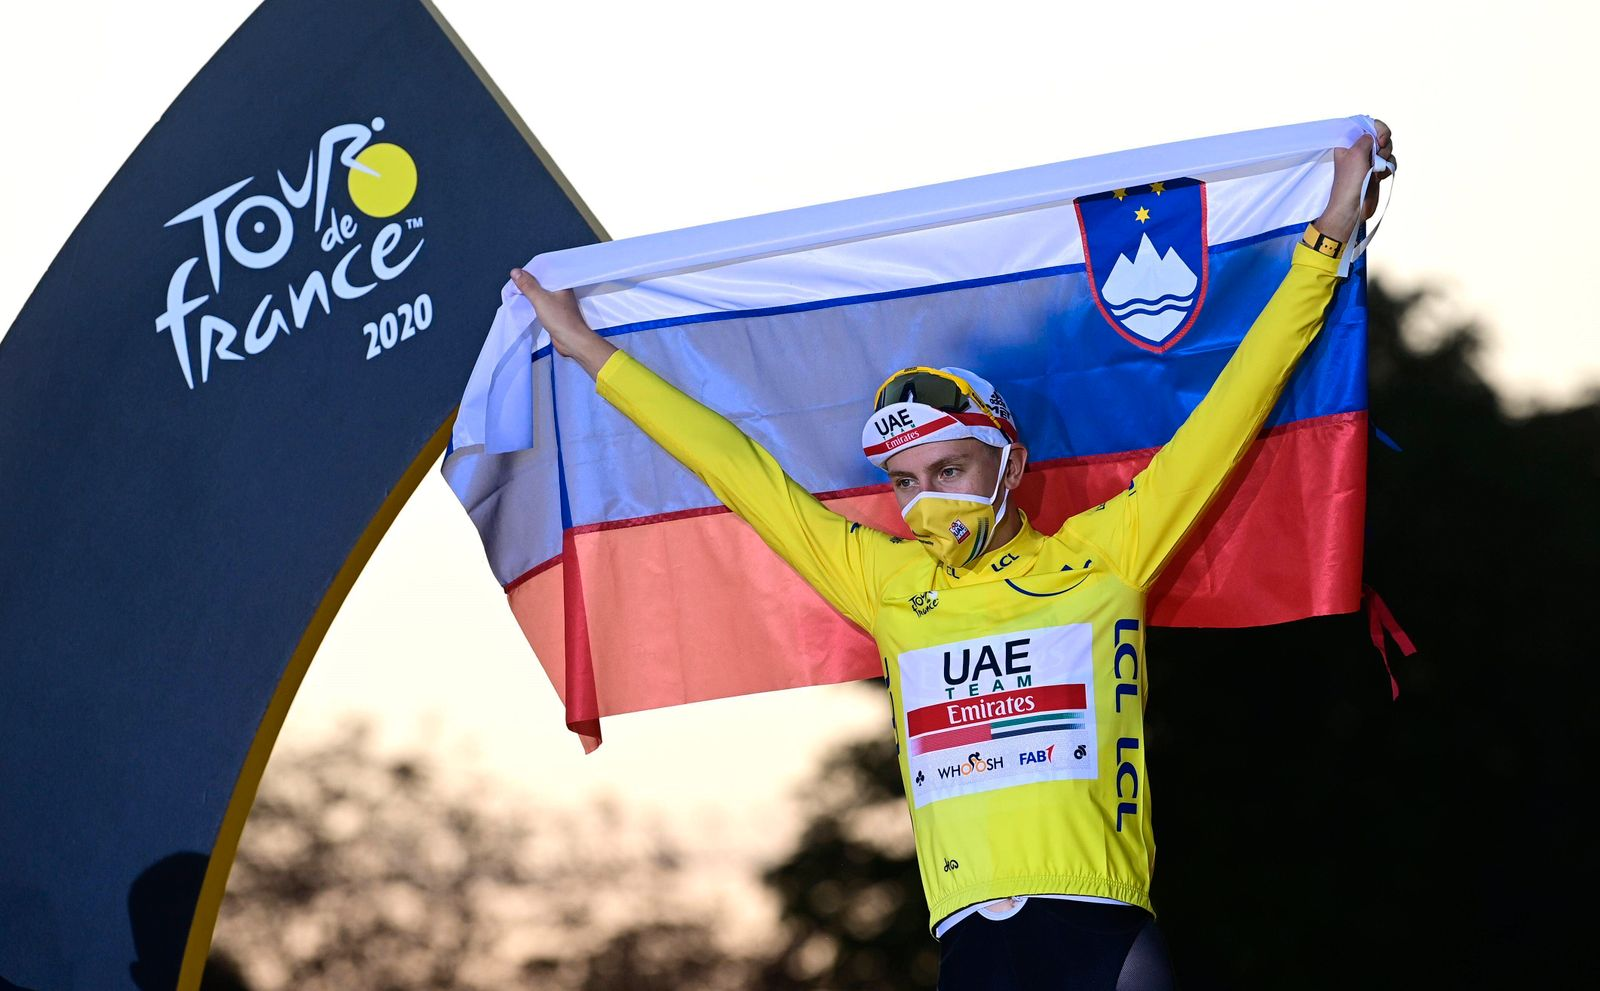 PARIS, FRANCE - SEPTEMBER 20 : POGACAR Tadej (SLO) of UAE TEAM EMIRATES pictured with the yellow jersey during the podi